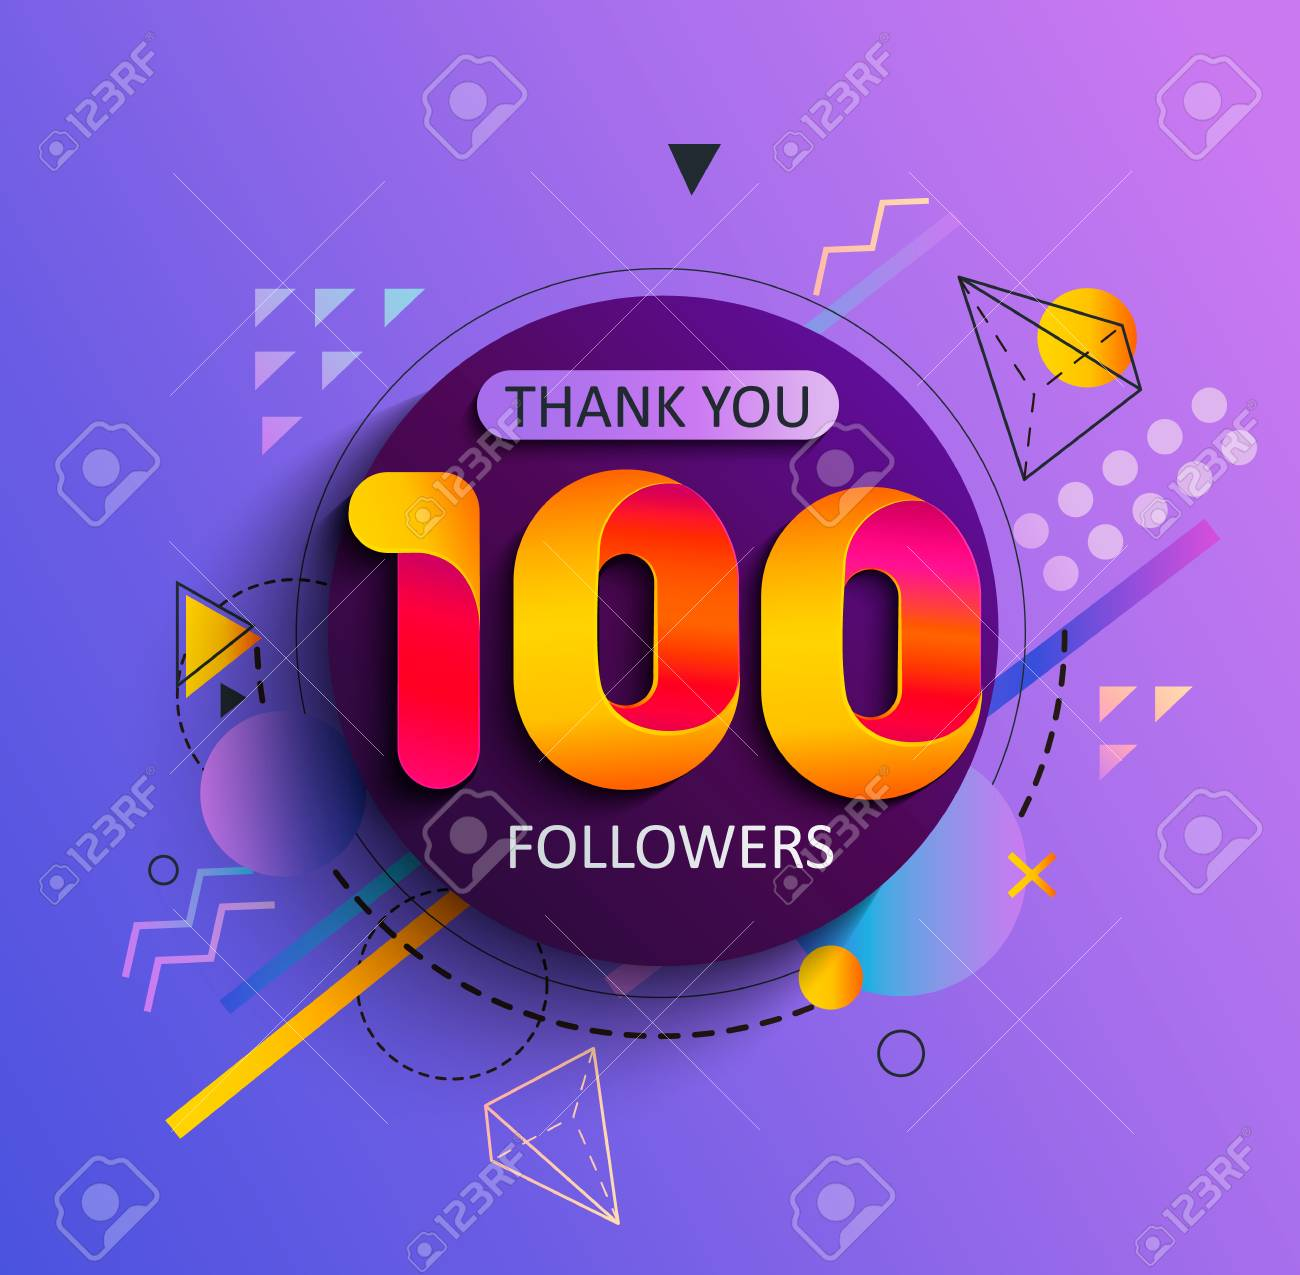 Thanks for the first 100 followers. Thank you followers congratulation card. Vector illustration for Social Networks. Web user or blogger celebrates and tweets a large number of subscribers. - 110408025